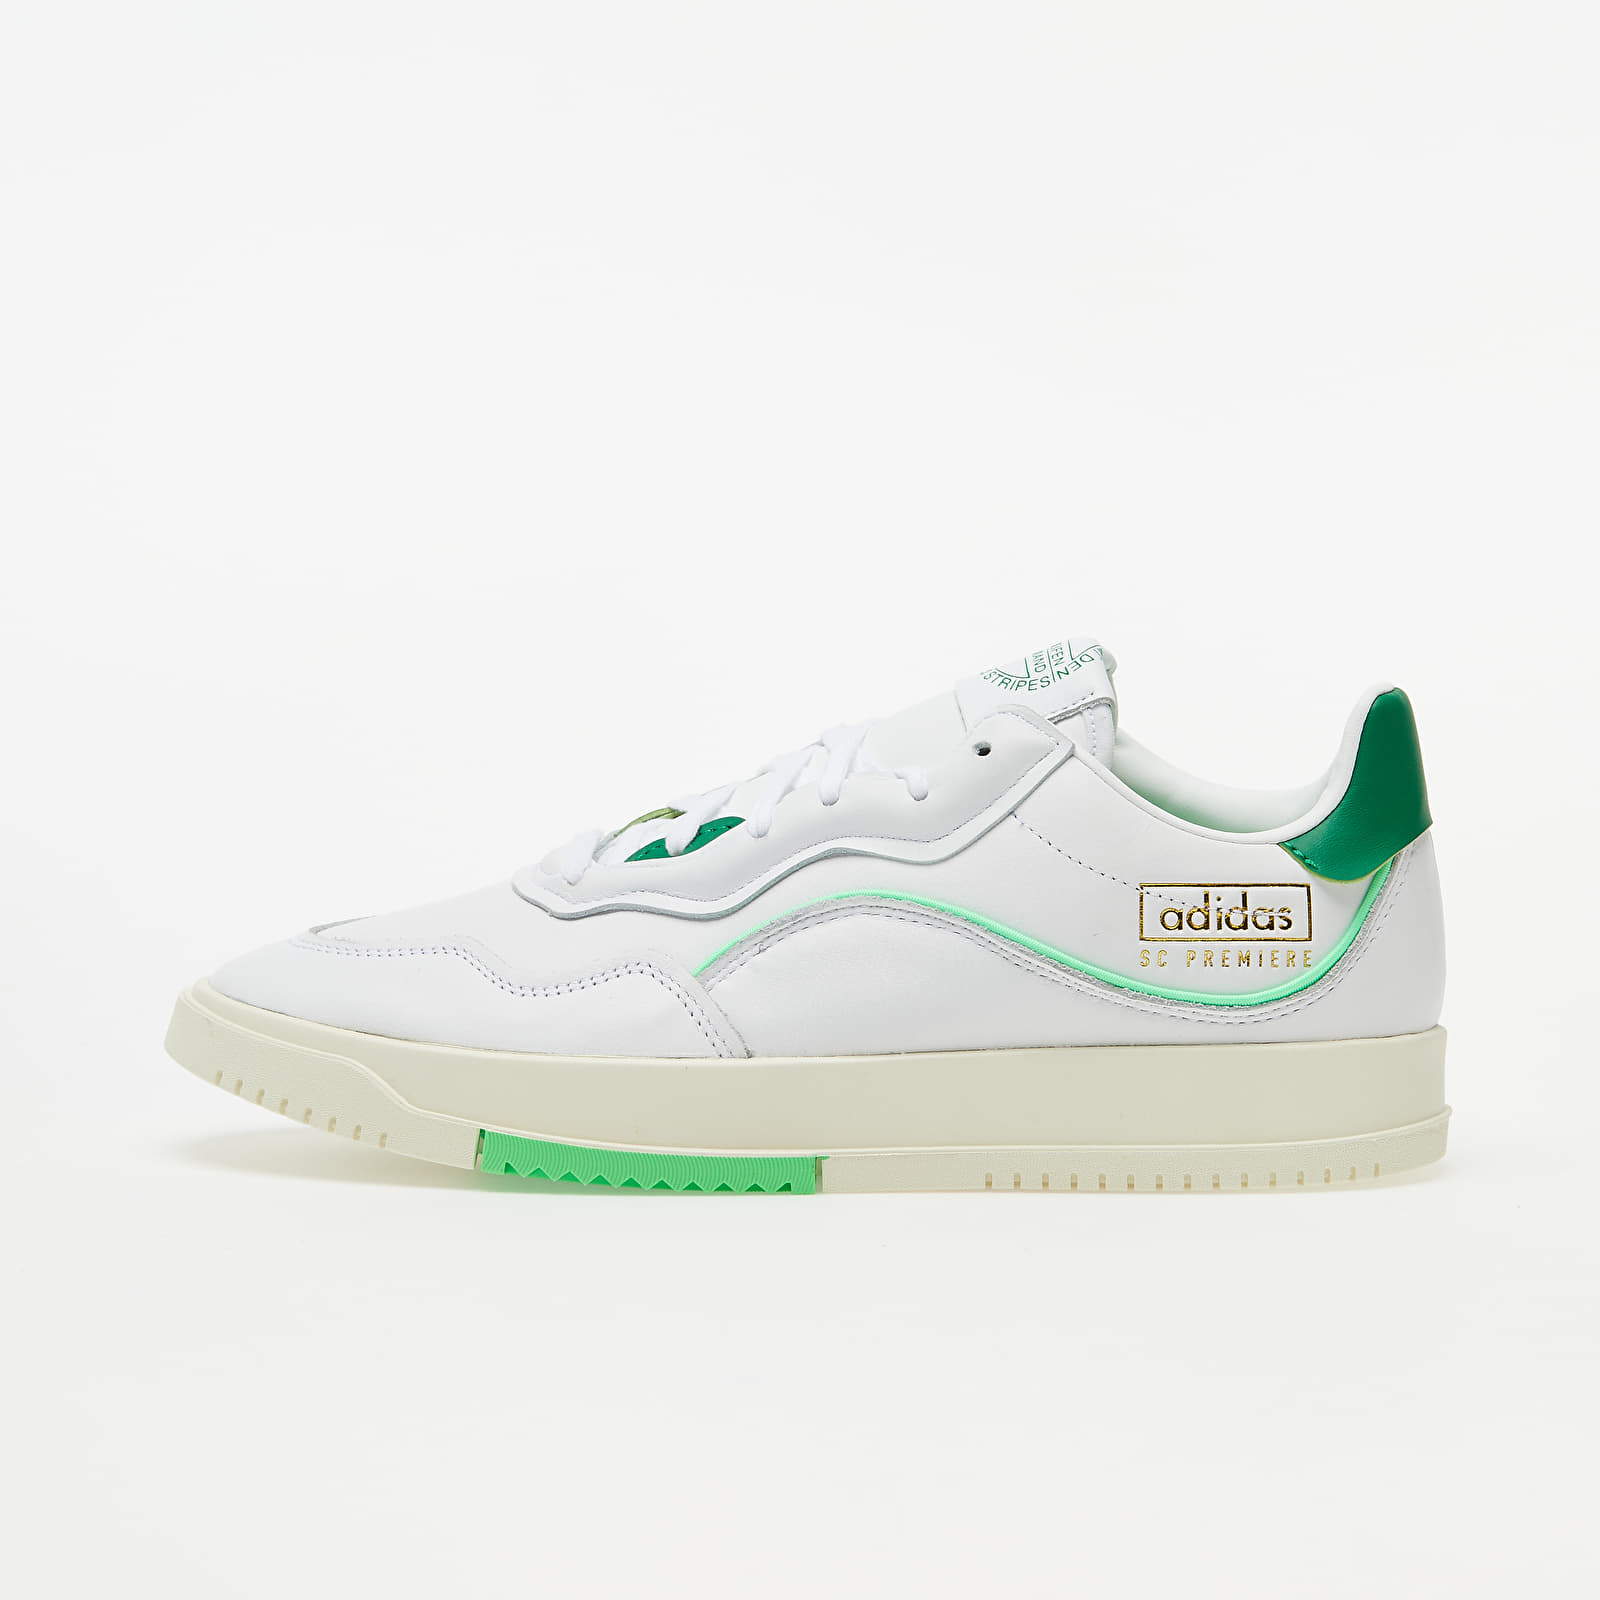 Мужская обувь adidas SC Premiere Ftw White/ Green/ Shock Lime